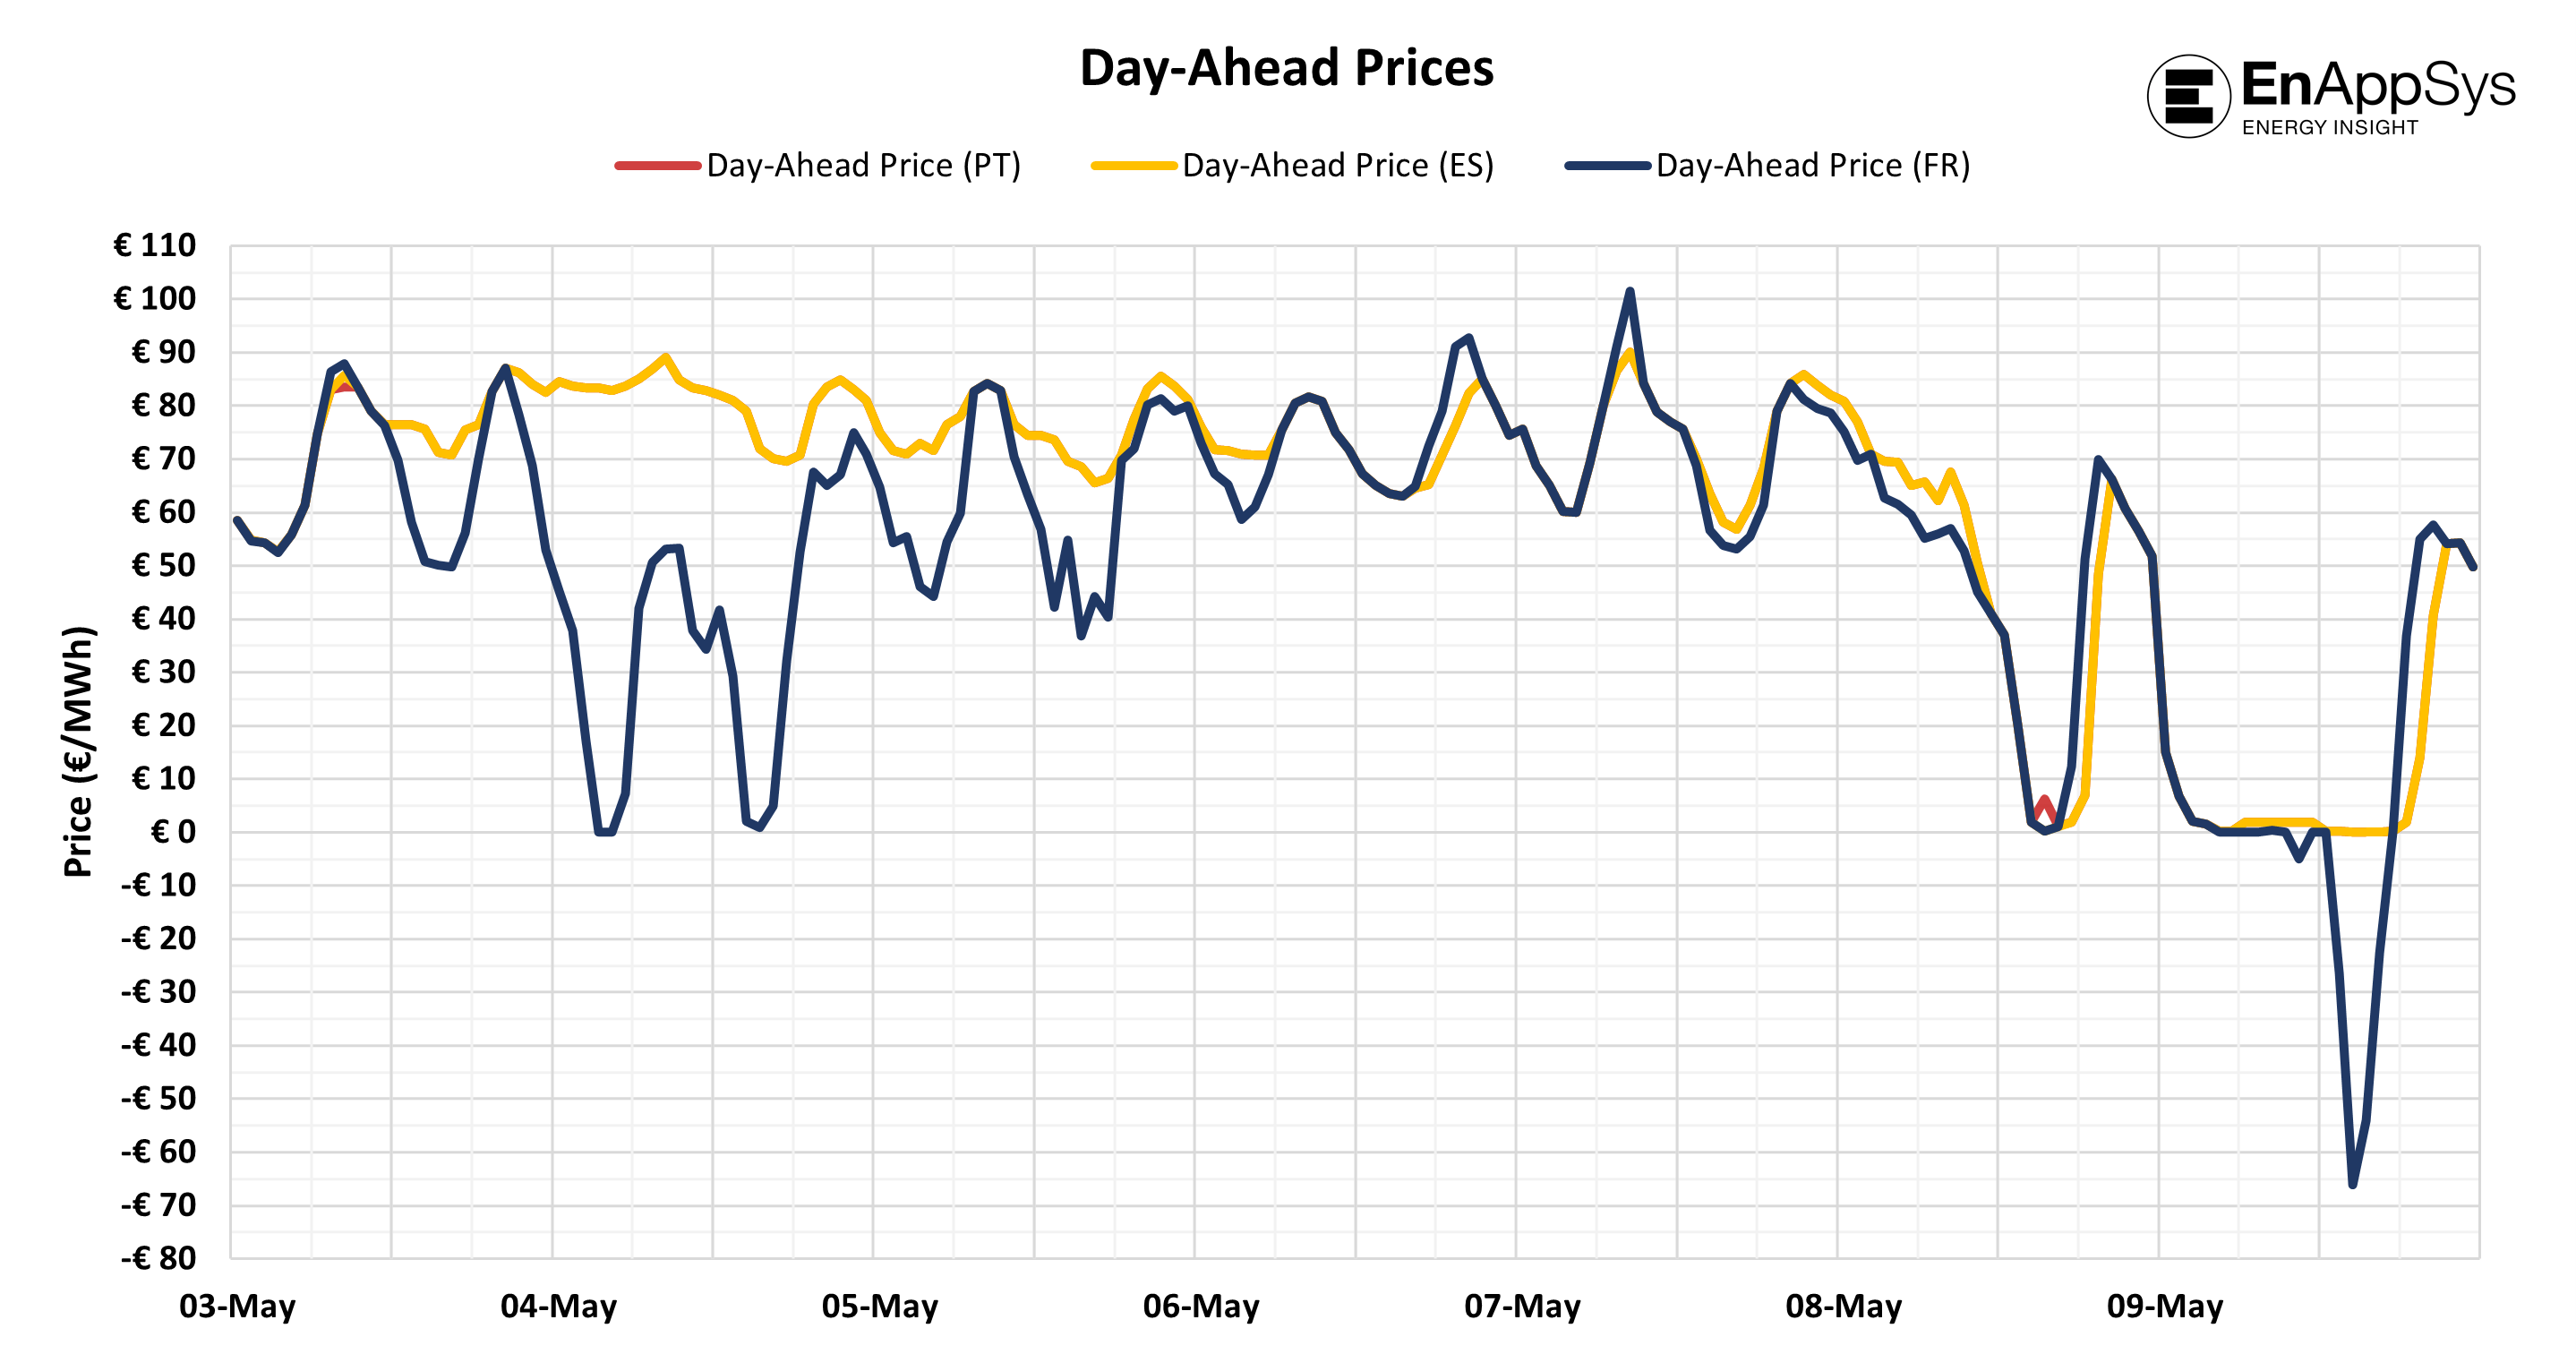 Figure 1 - Day Ahead Prices